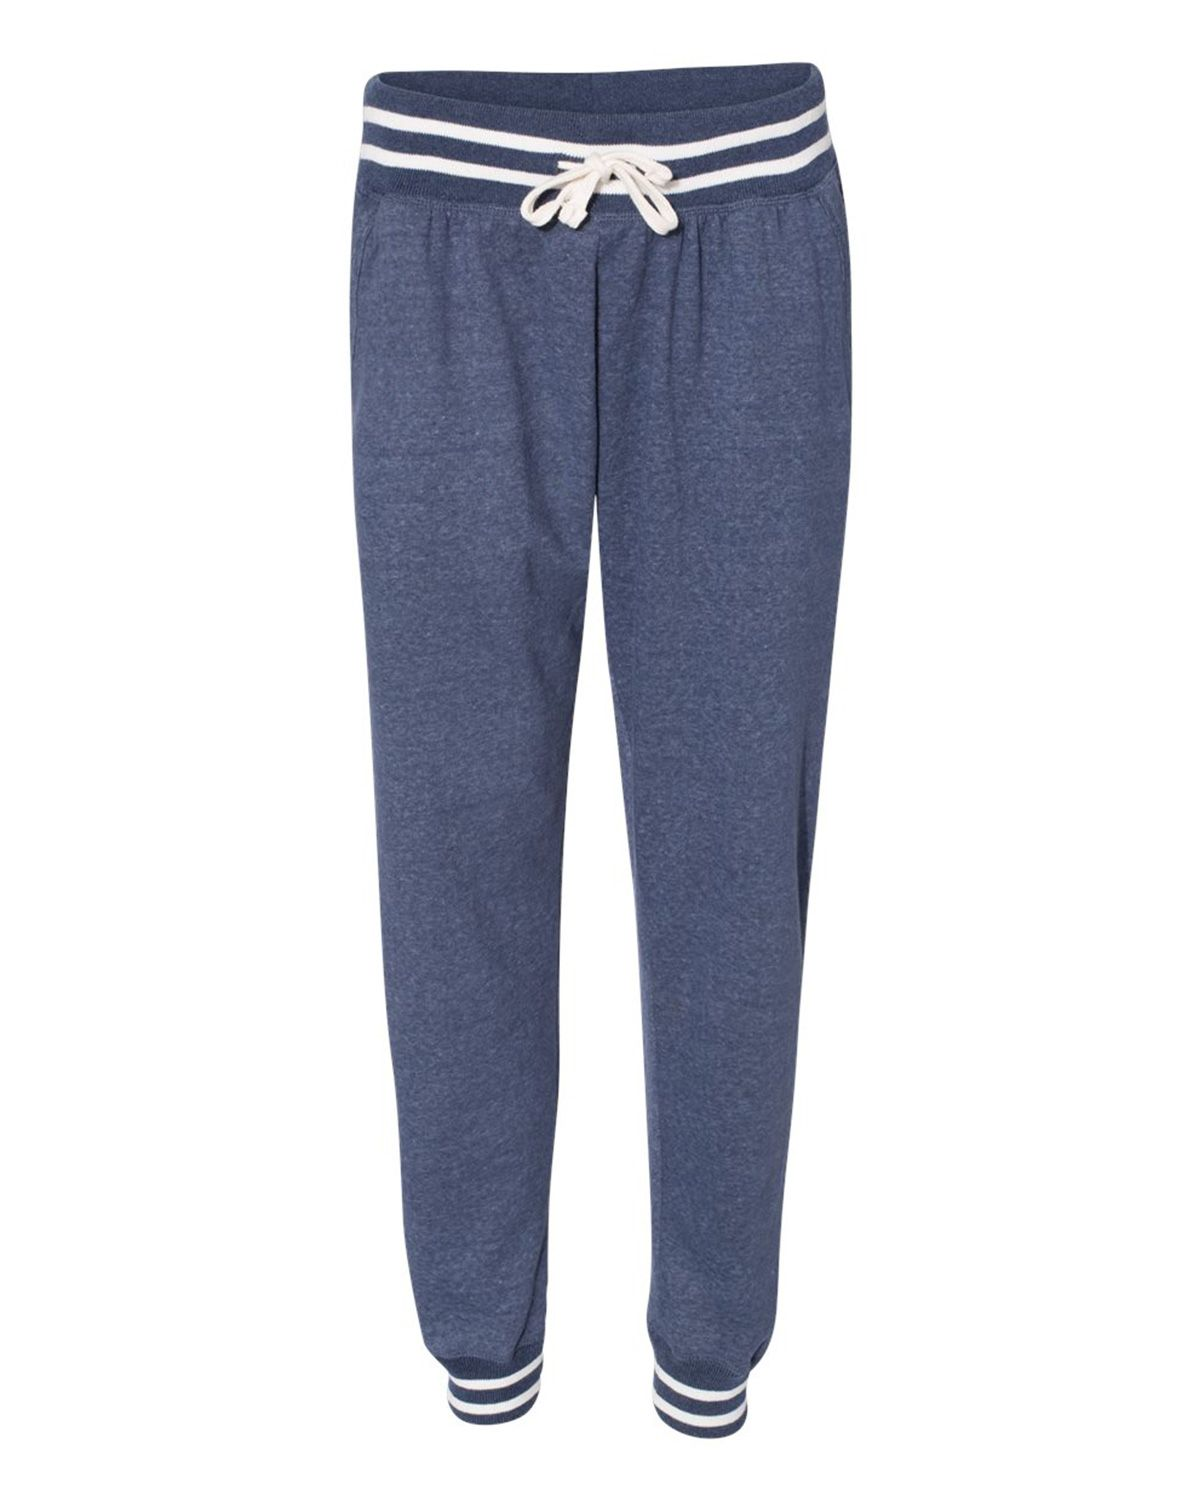 J America 8654 Women's Relay Jogger - Navy - S from J America